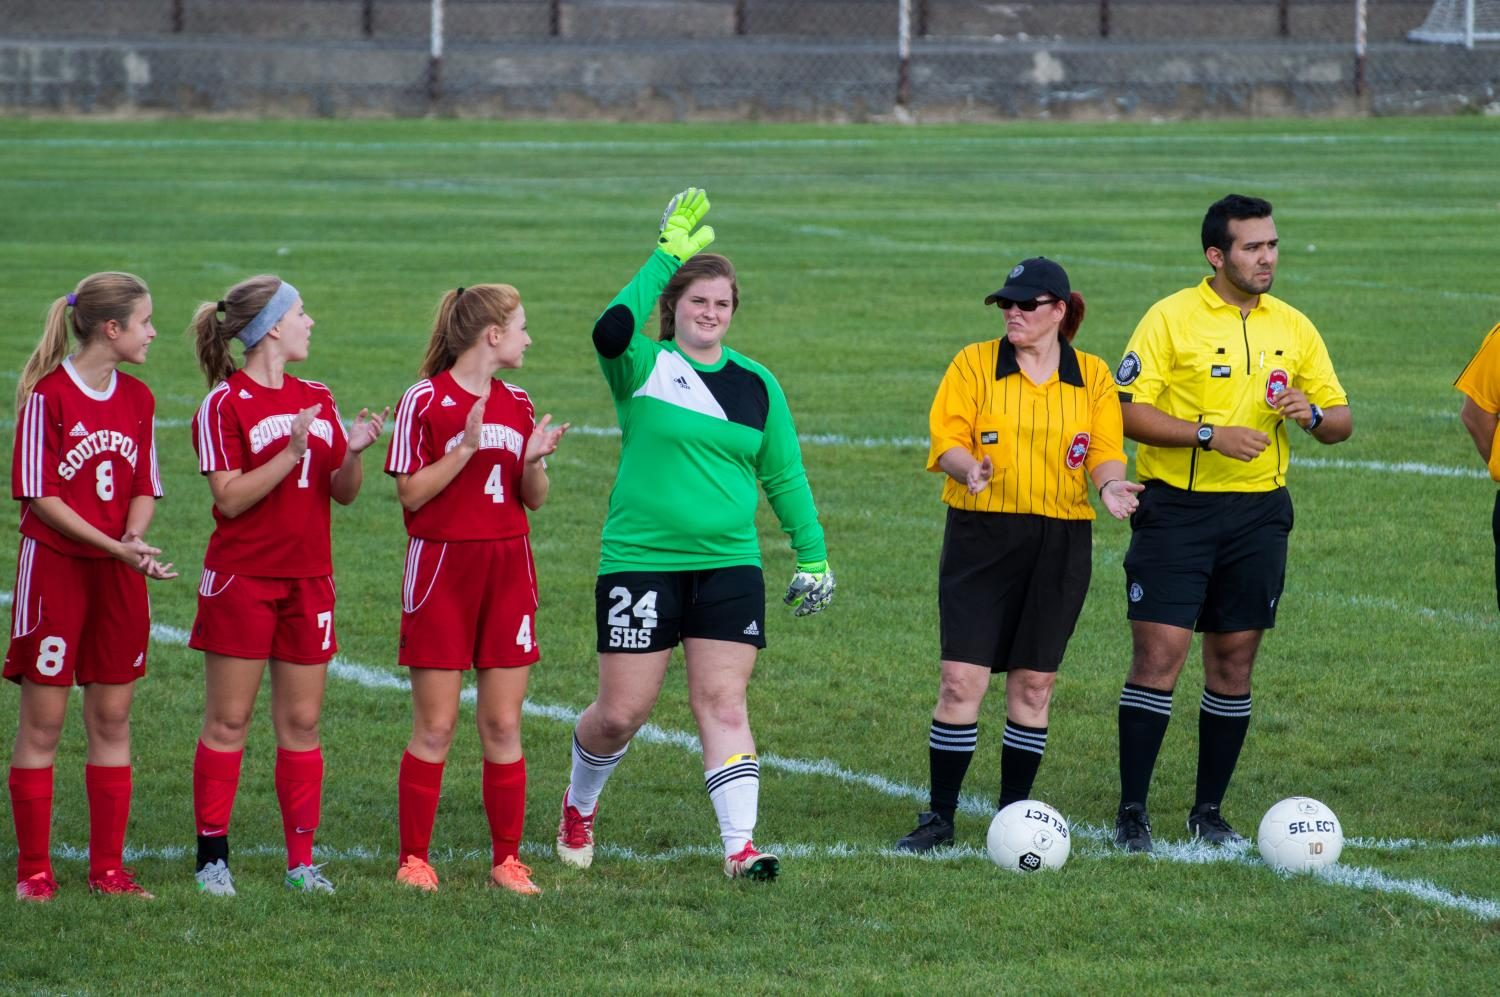 Senior and Captain Emily Chambers gets introduced during the soccer game on Tuesday Aug. 15 at Kuntz stadium. Chambers has been a varsity starter for 4 years.